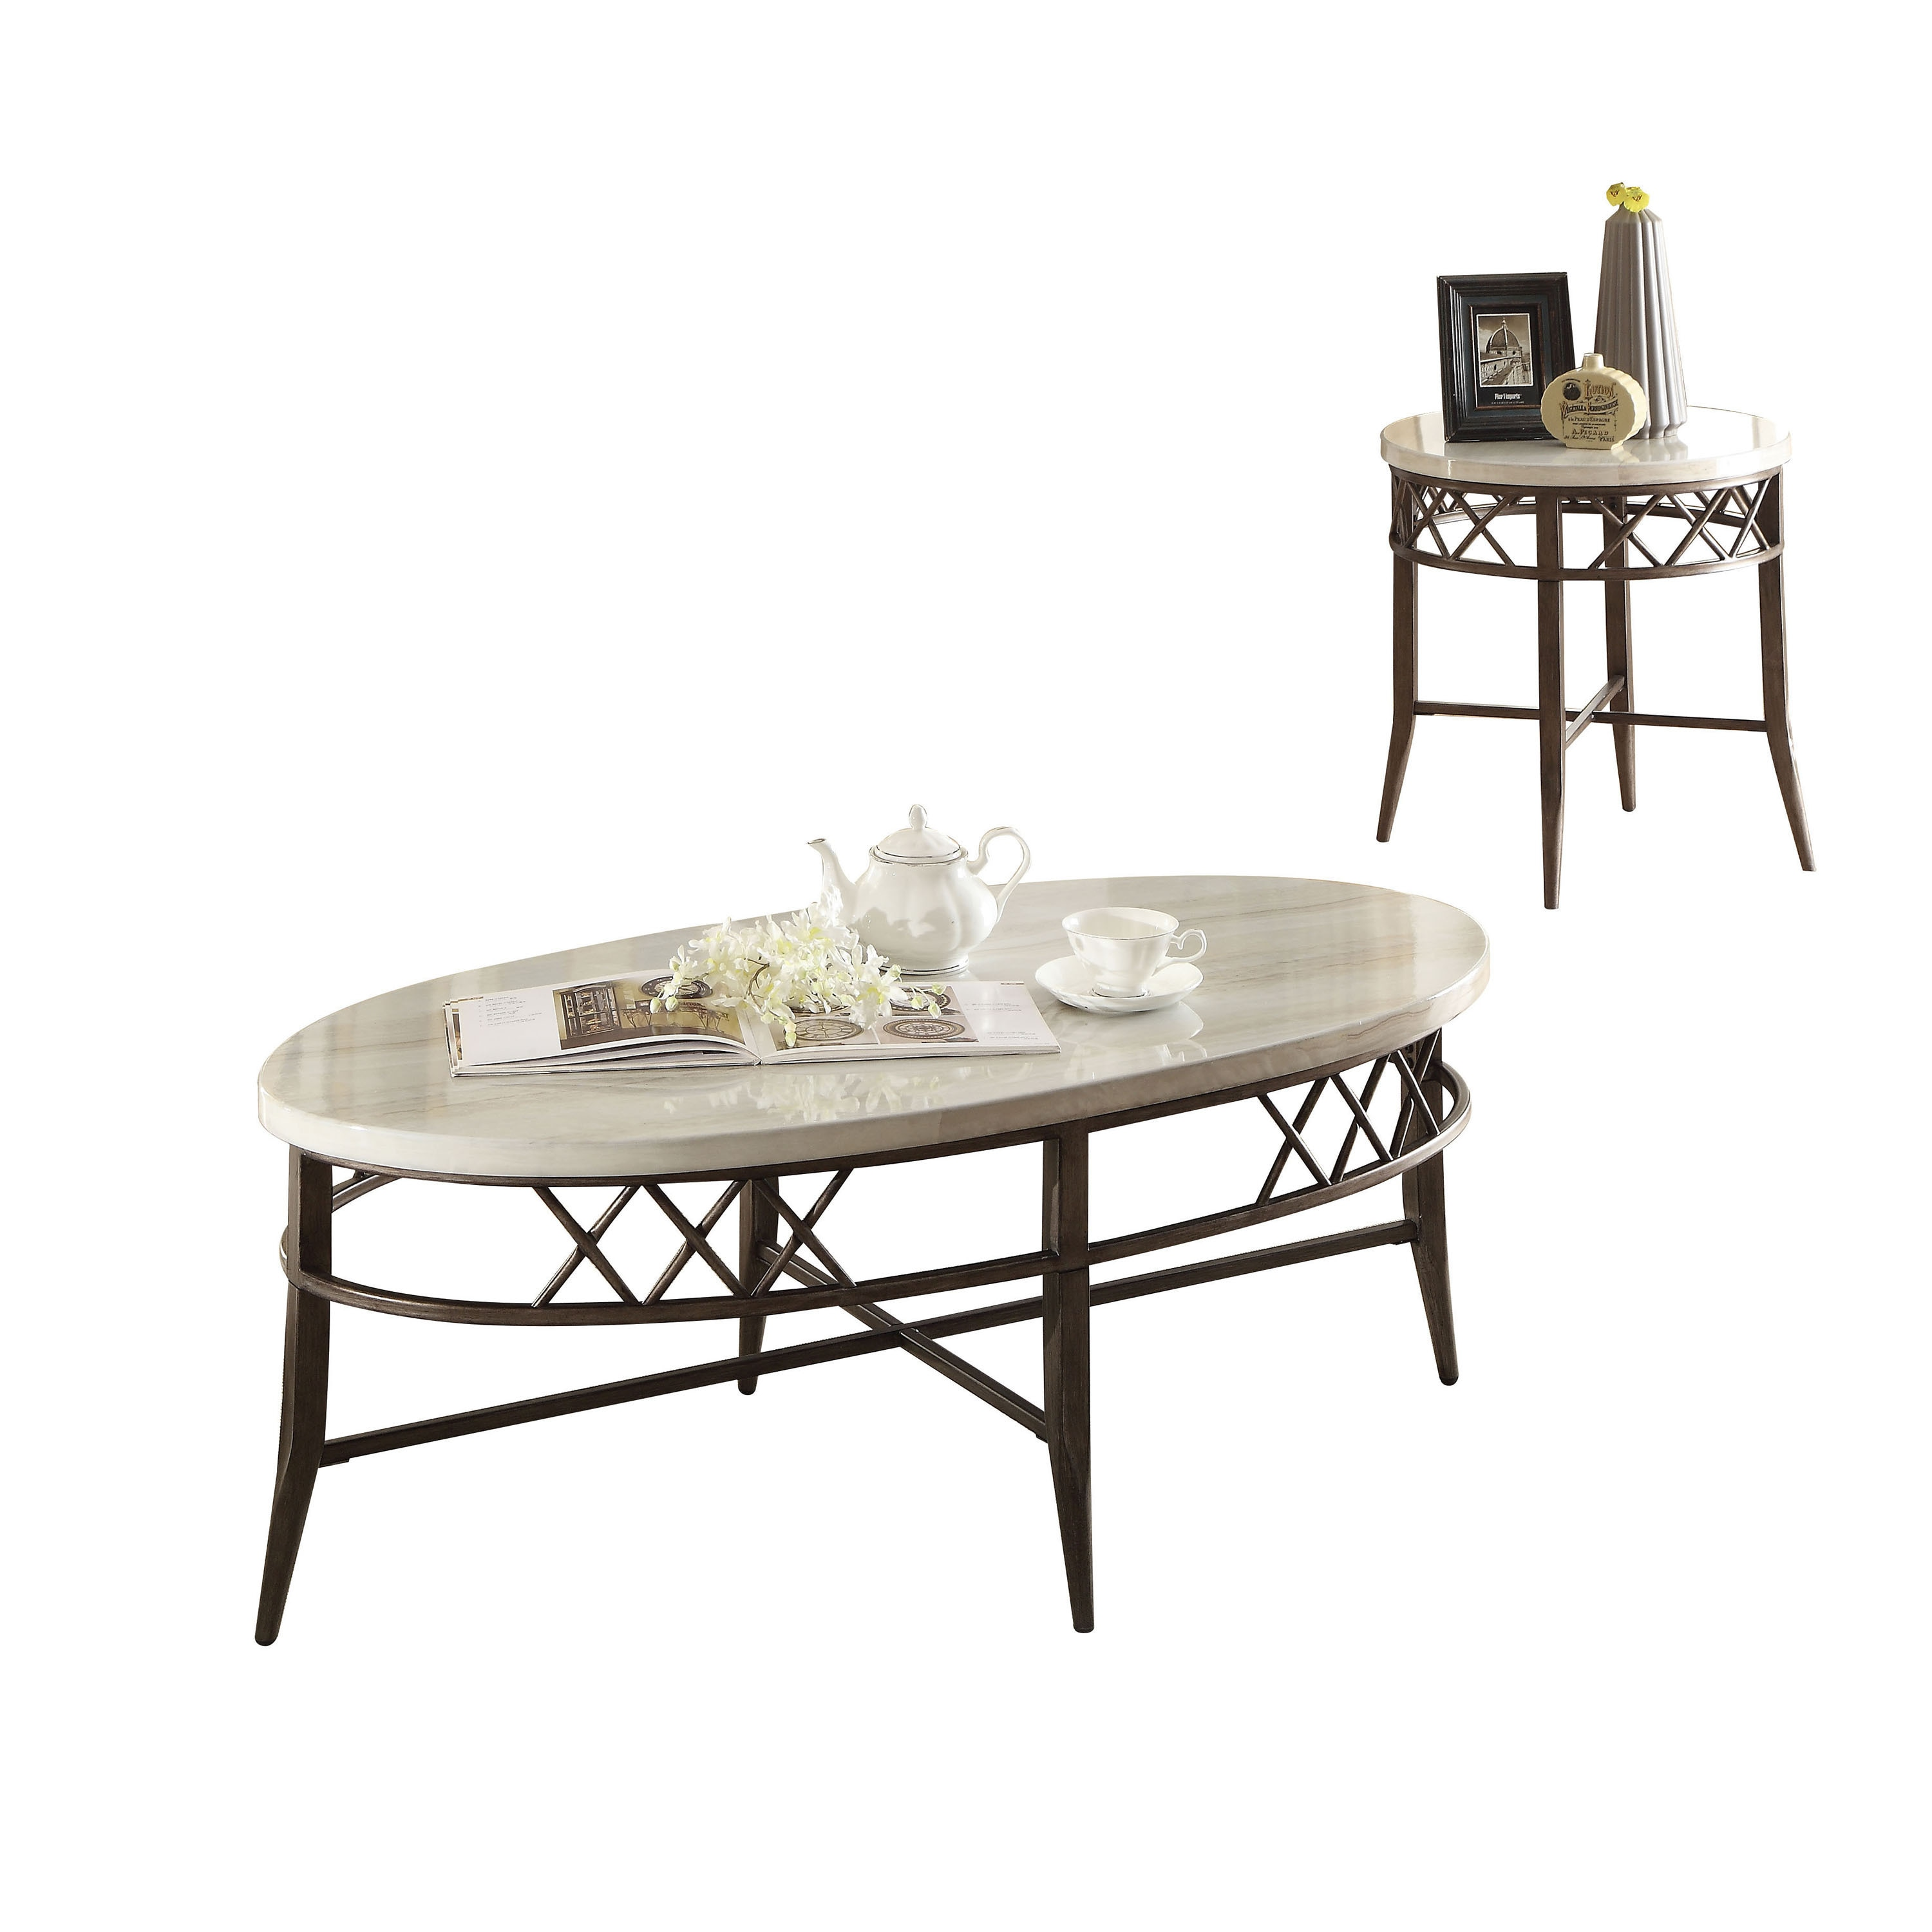 Marvelous Acme Furniture Aldric Faux Marble Coffee End Tables Set Of 3 Pdpeps Interior Chair Design Pdpepsorg